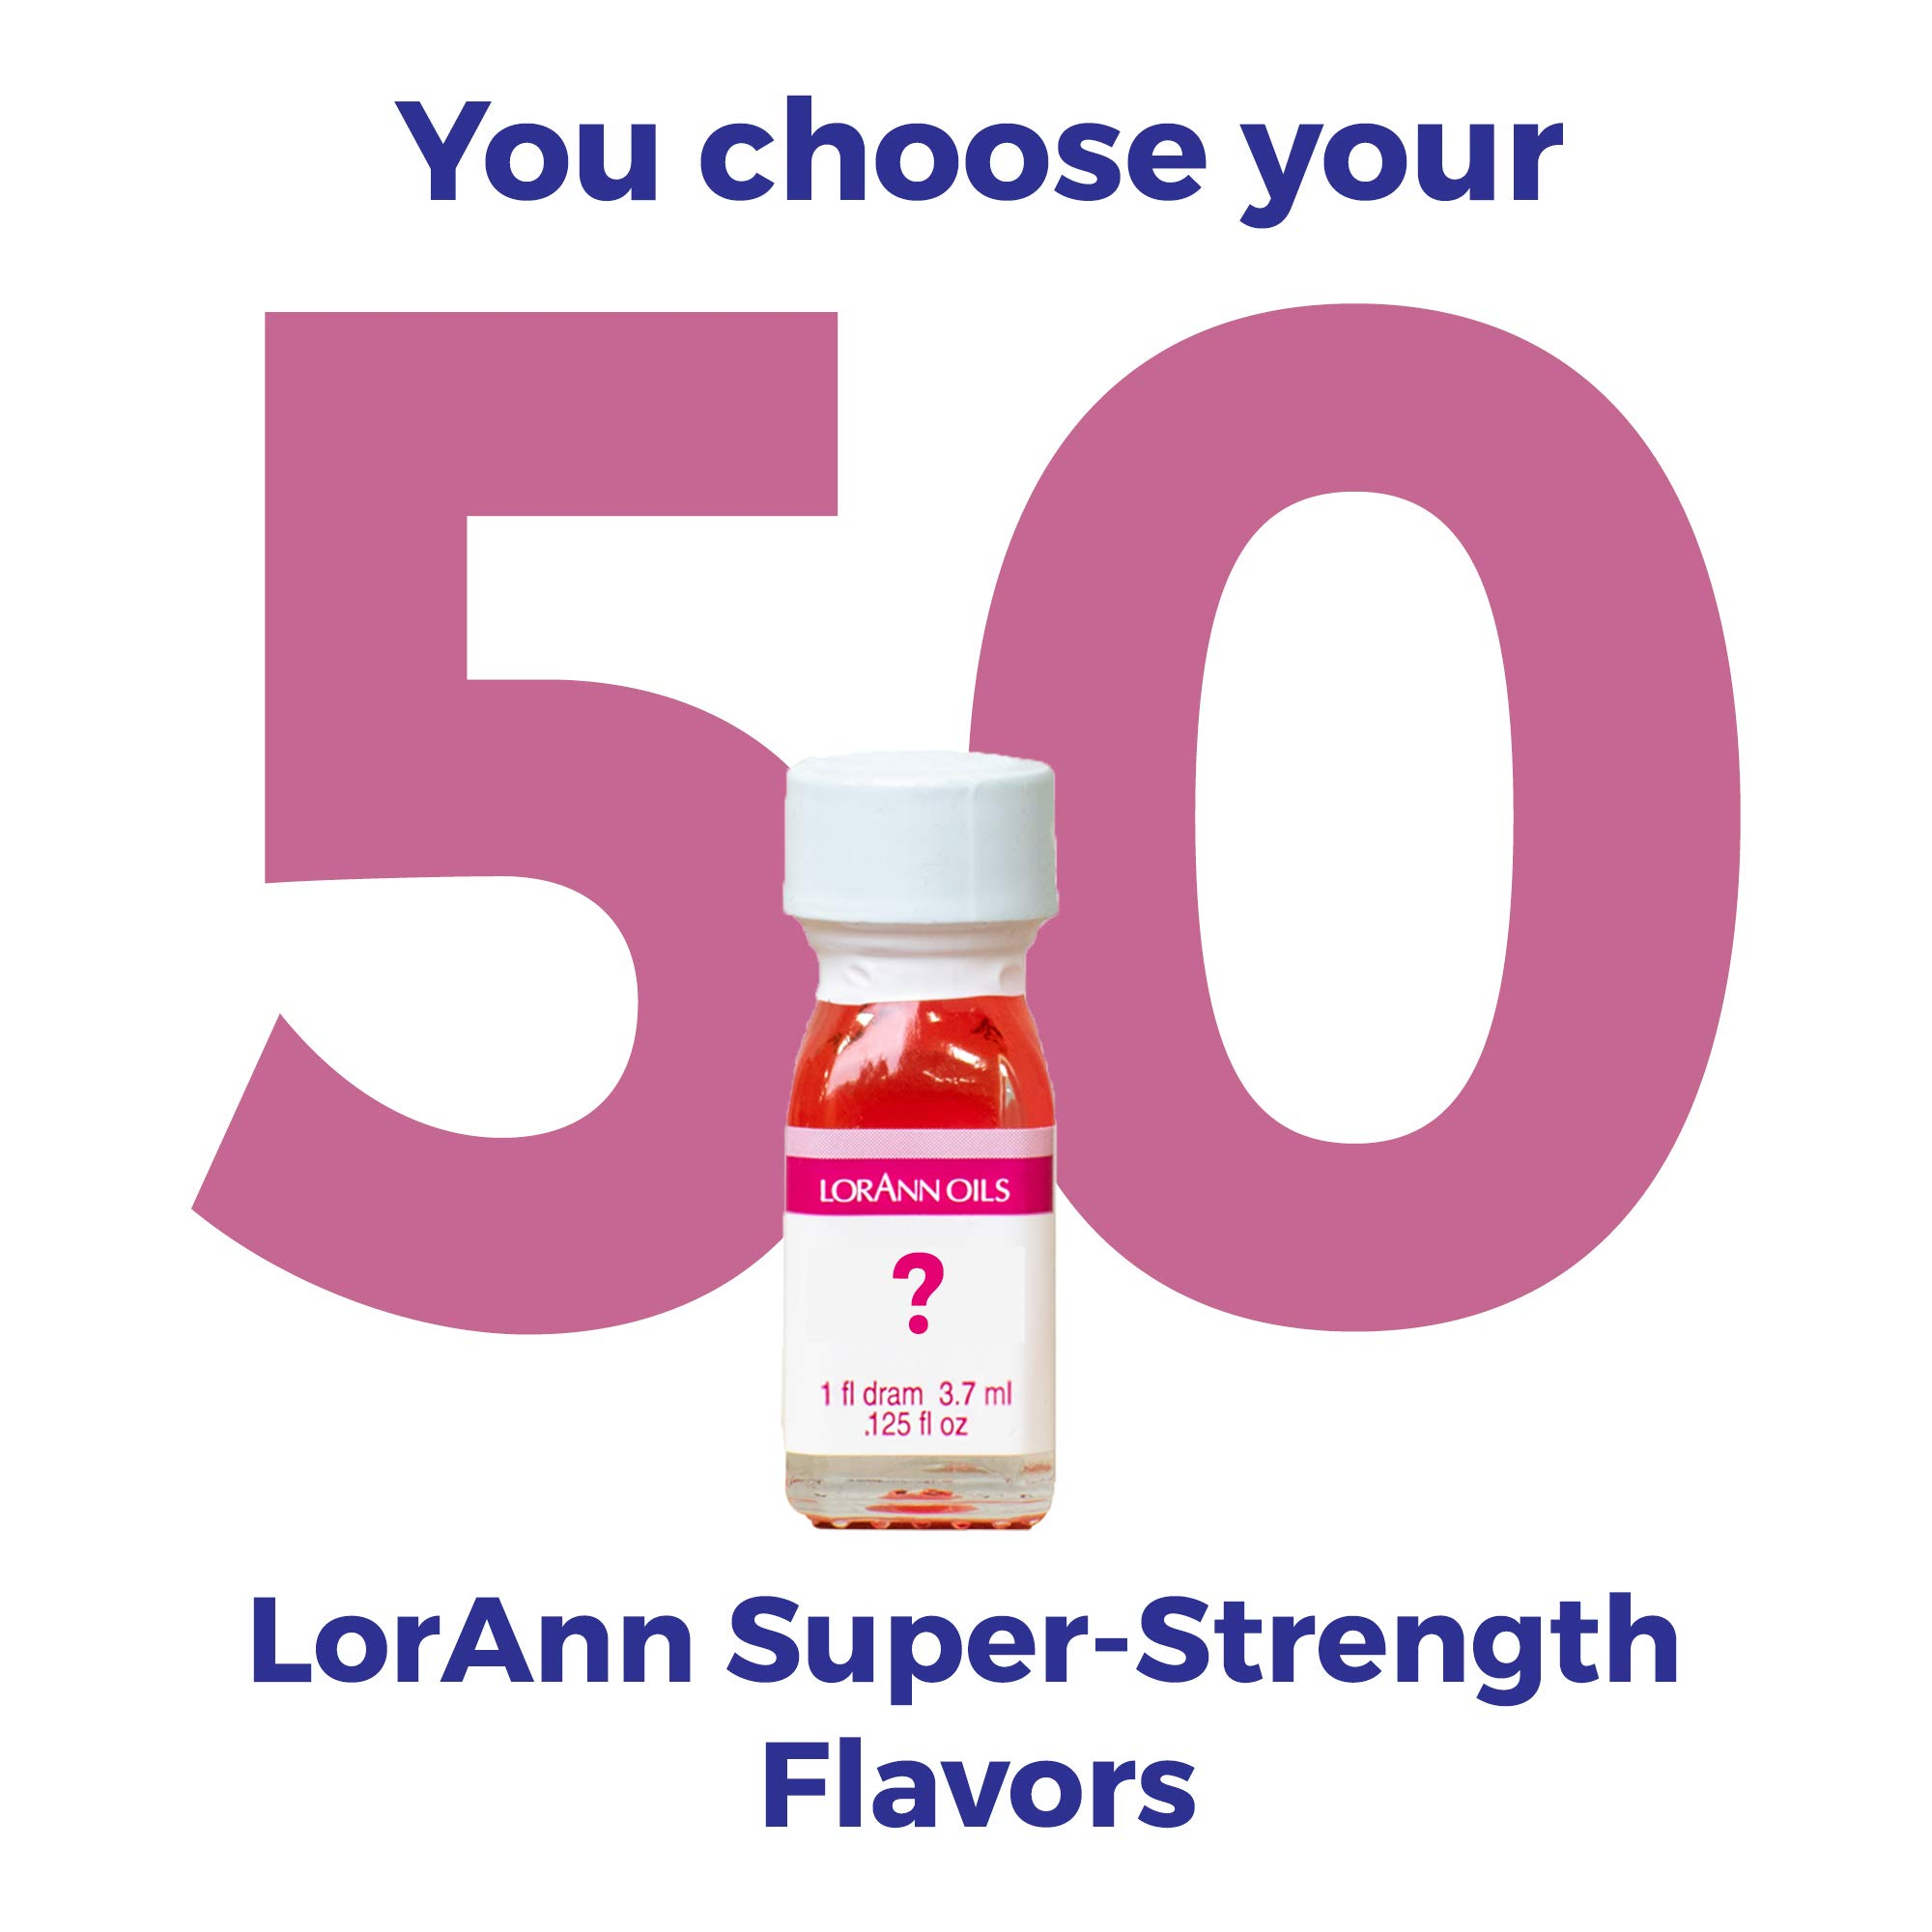 LorAnn Super Strength flavors 50 Pack of 1 dram bottles (.0125 fl oz - 3.7ml) YOU CHOOSE THE FLAVORS by LorAnn